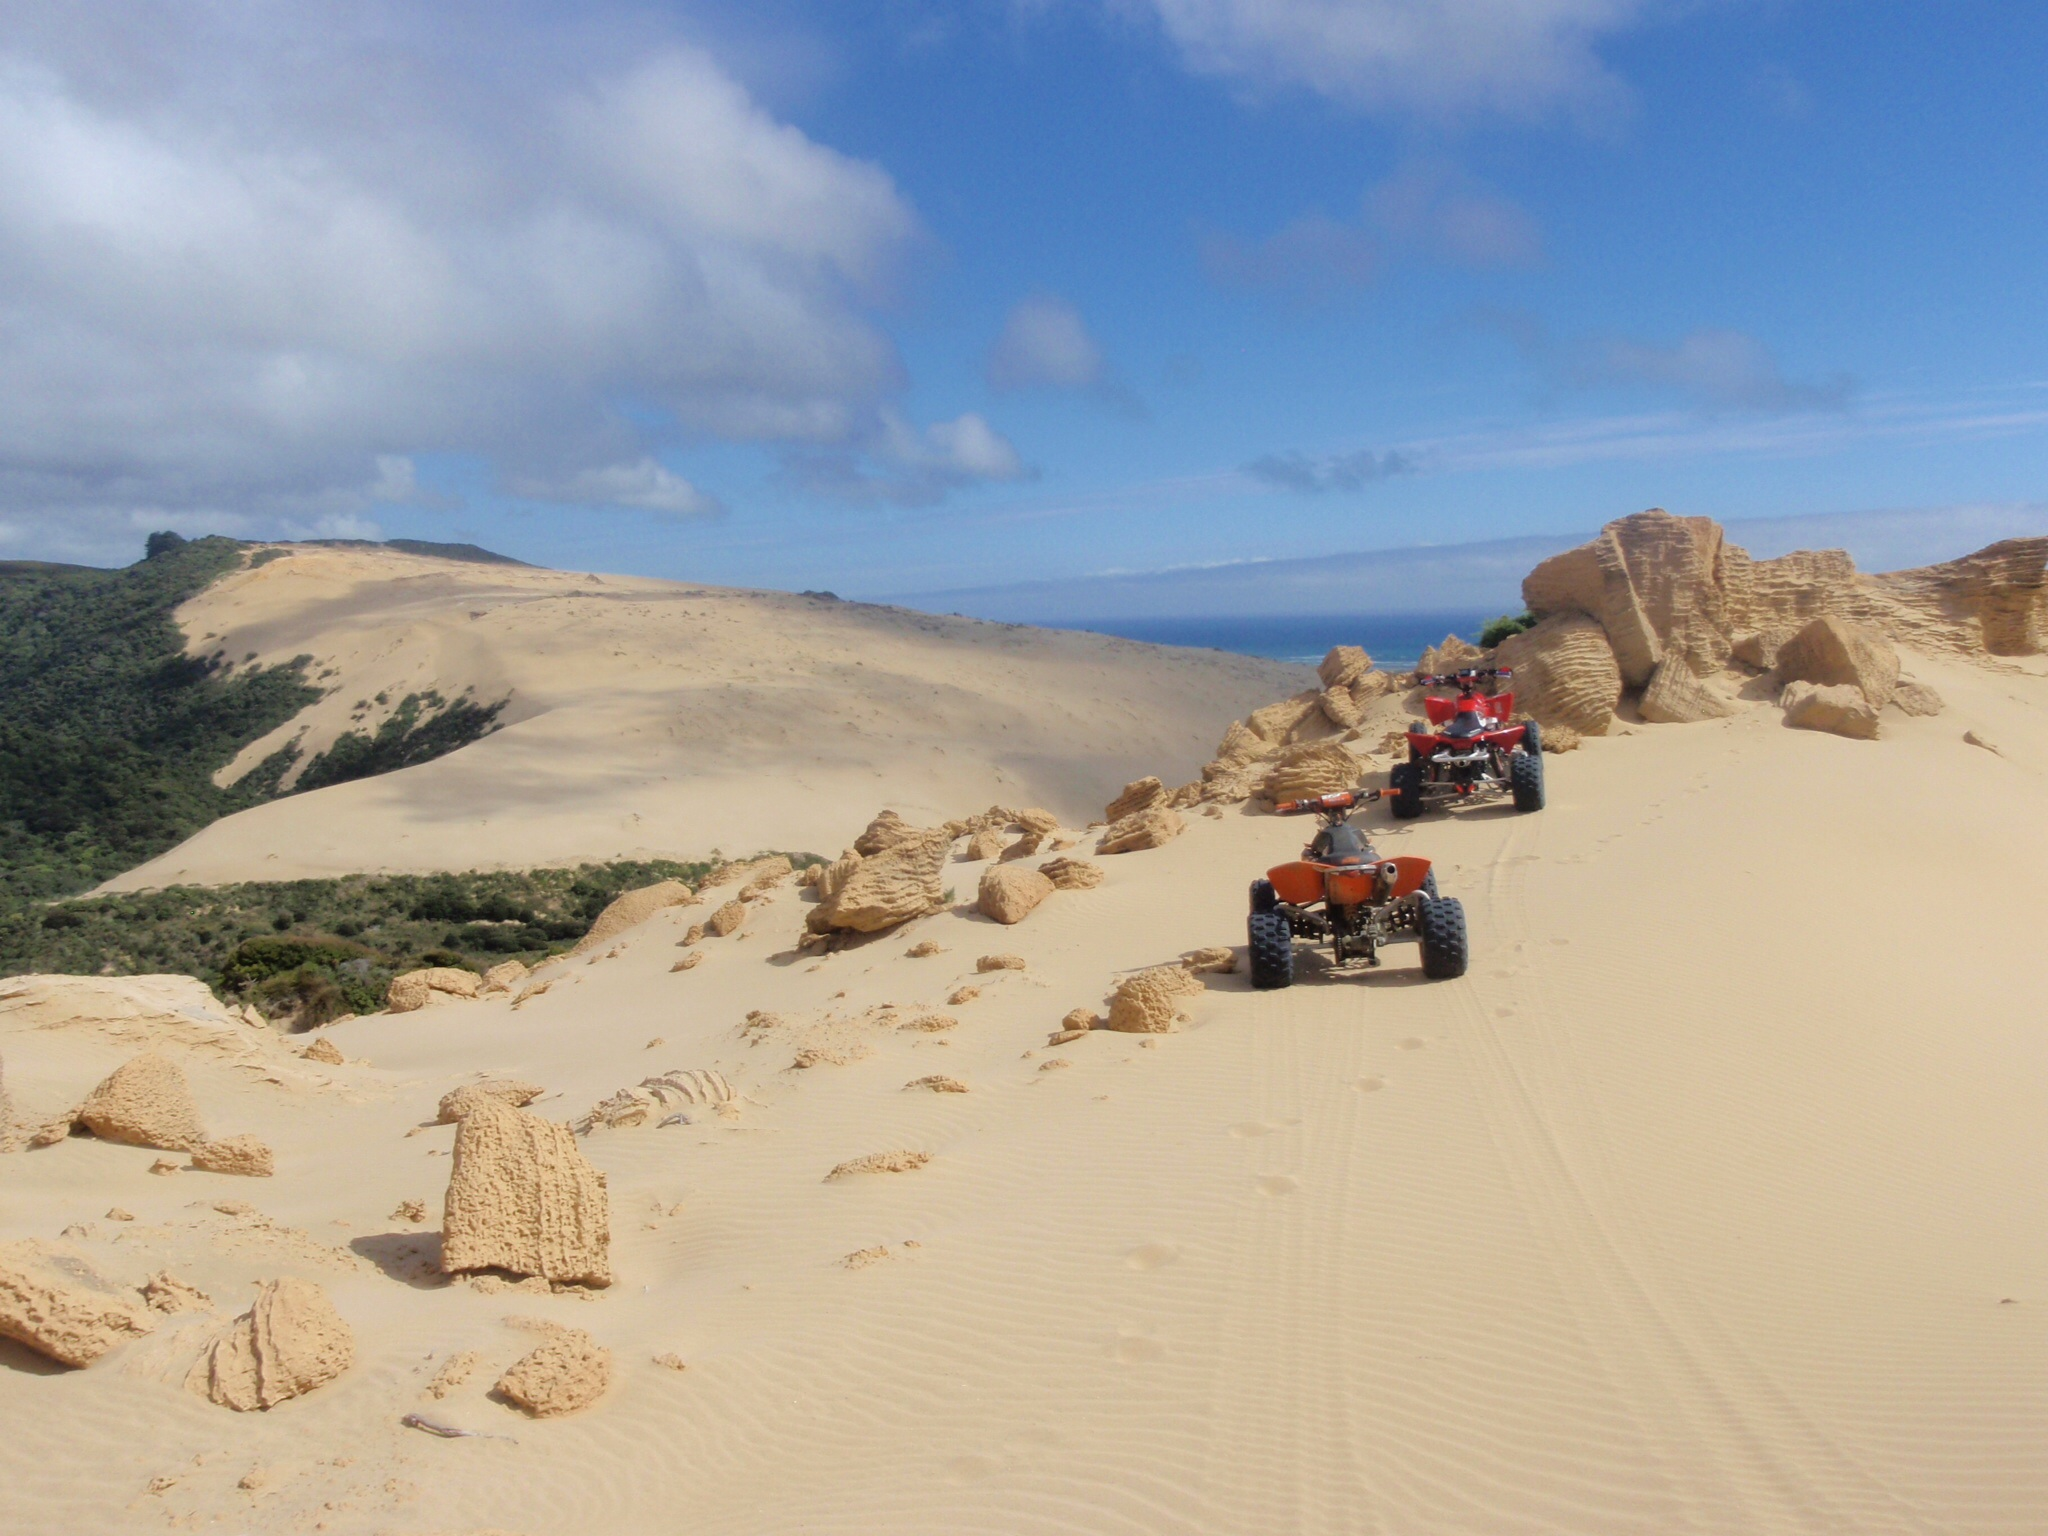 Ahipara New Zealand  city pictures gallery : Ahipara sand dunes New Zealand image